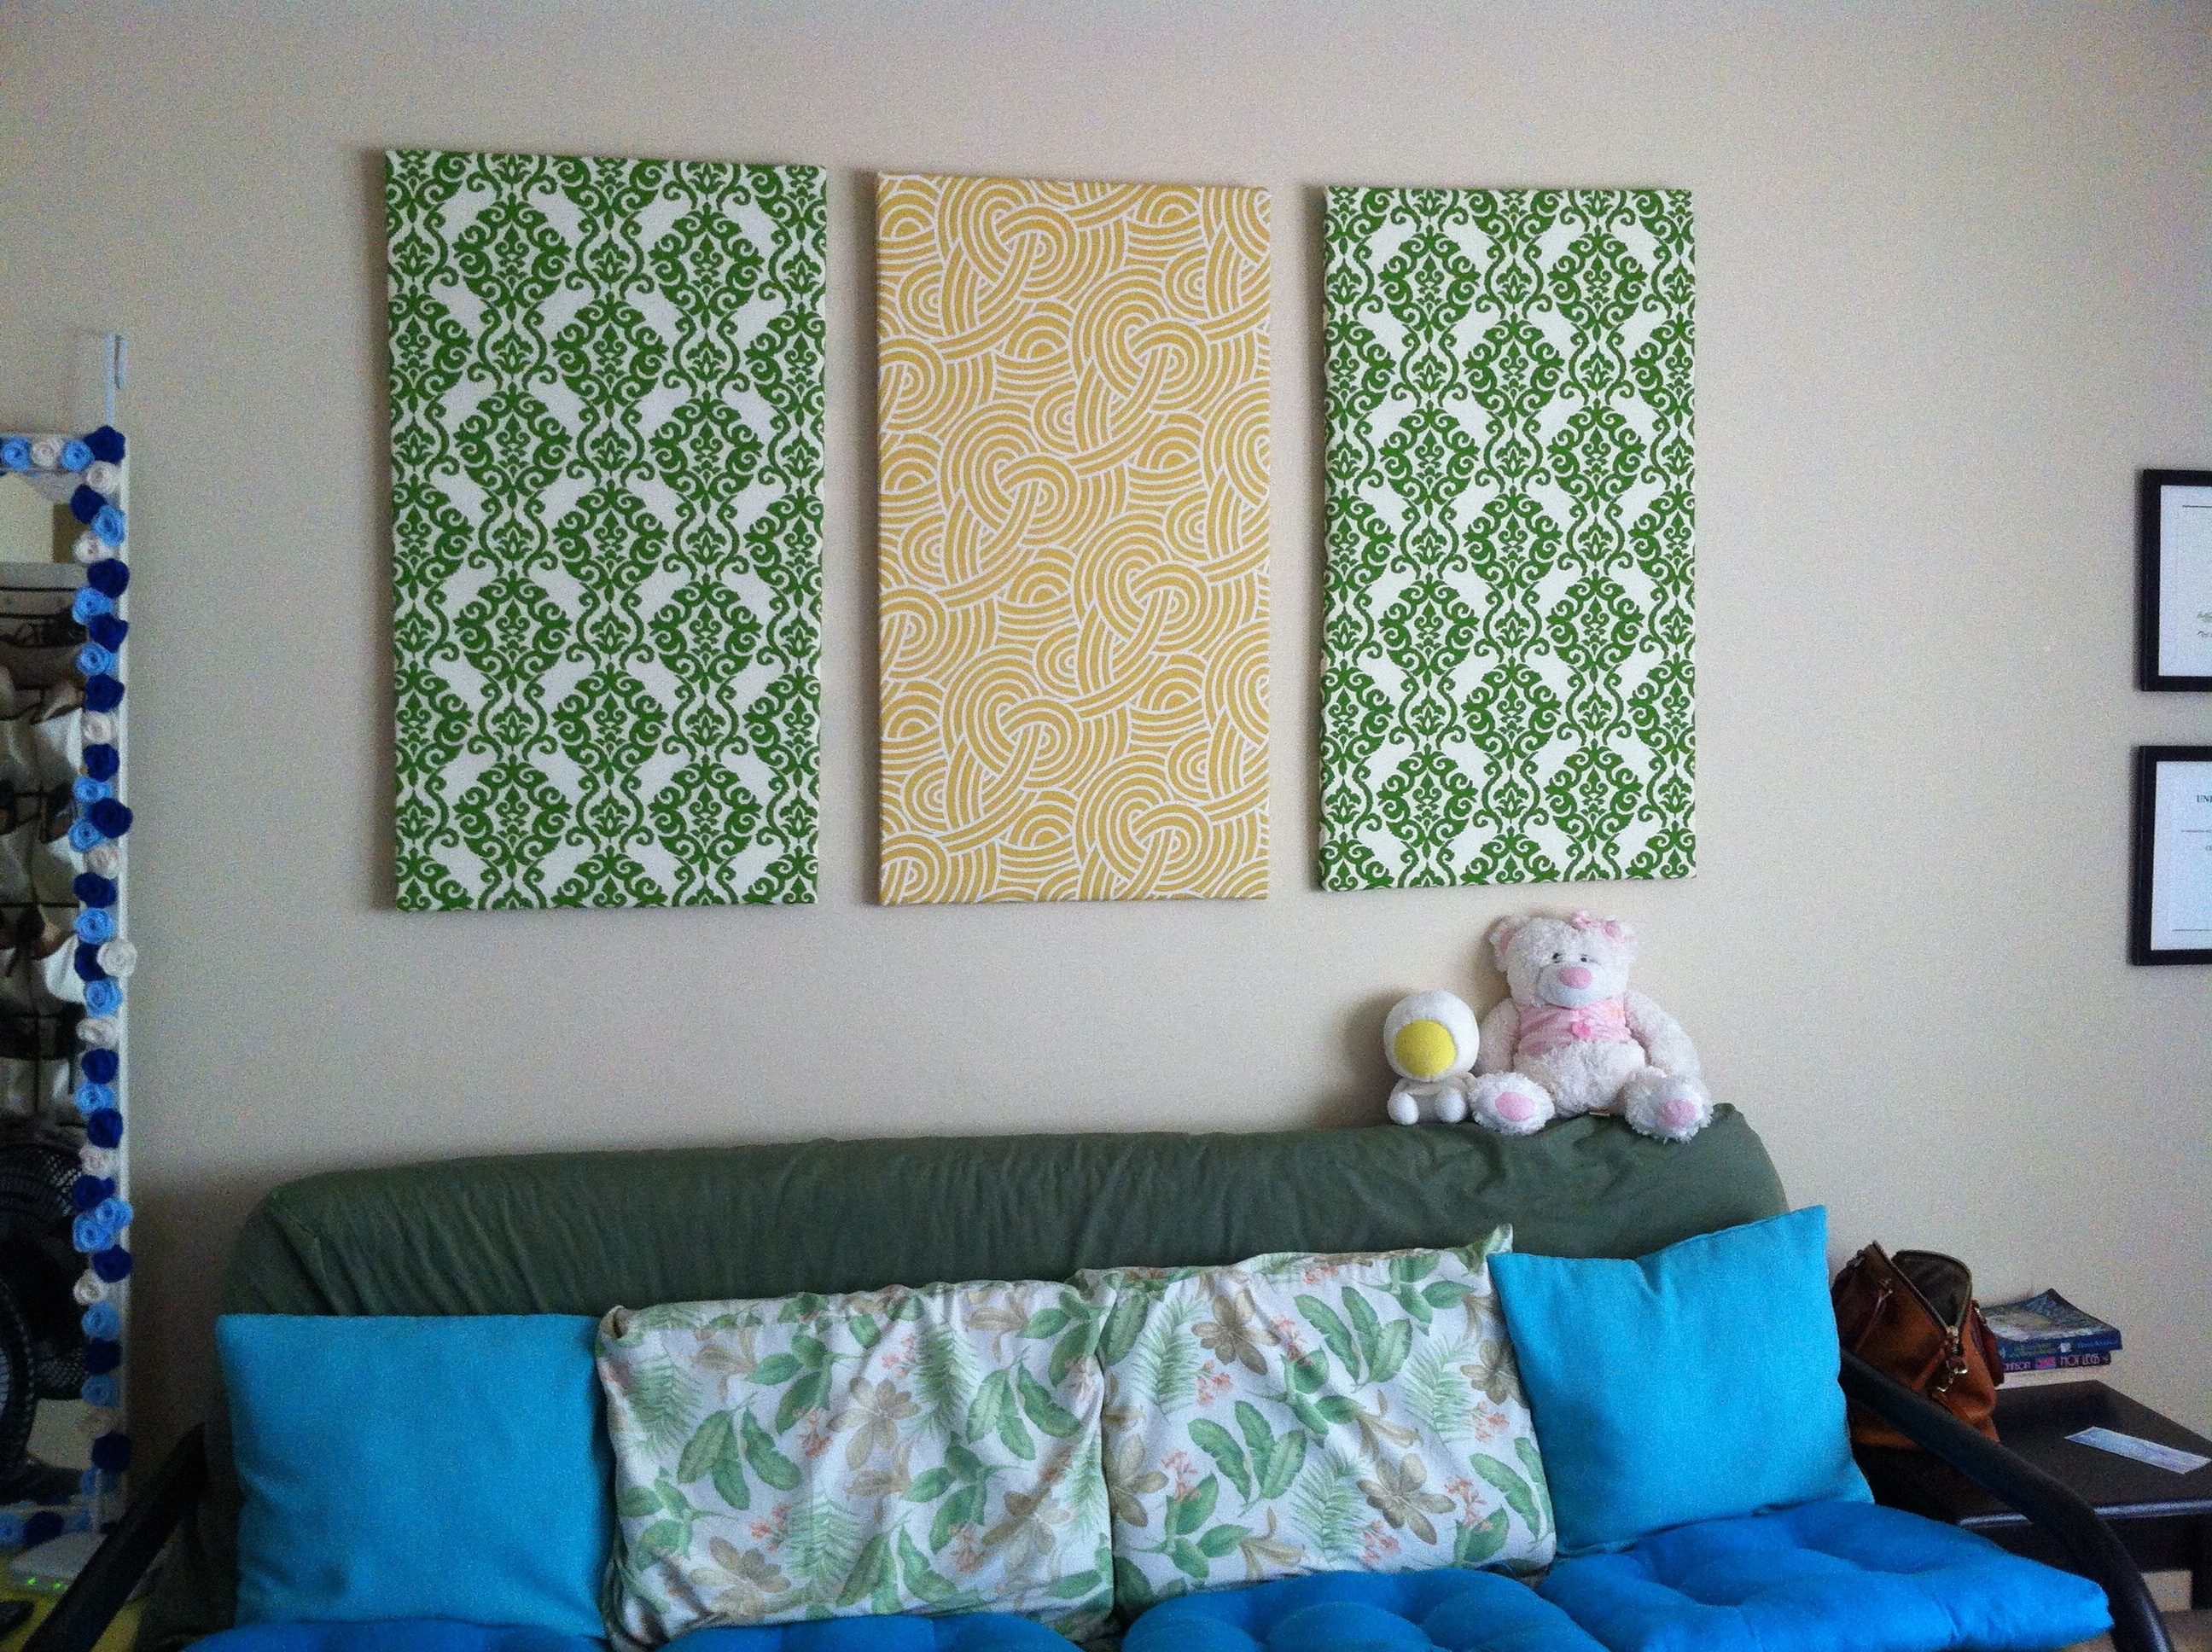 Art: Diy Fabric Wall Art Intended For Recent Fabric Wall Art Canvas (View 1 of 15)